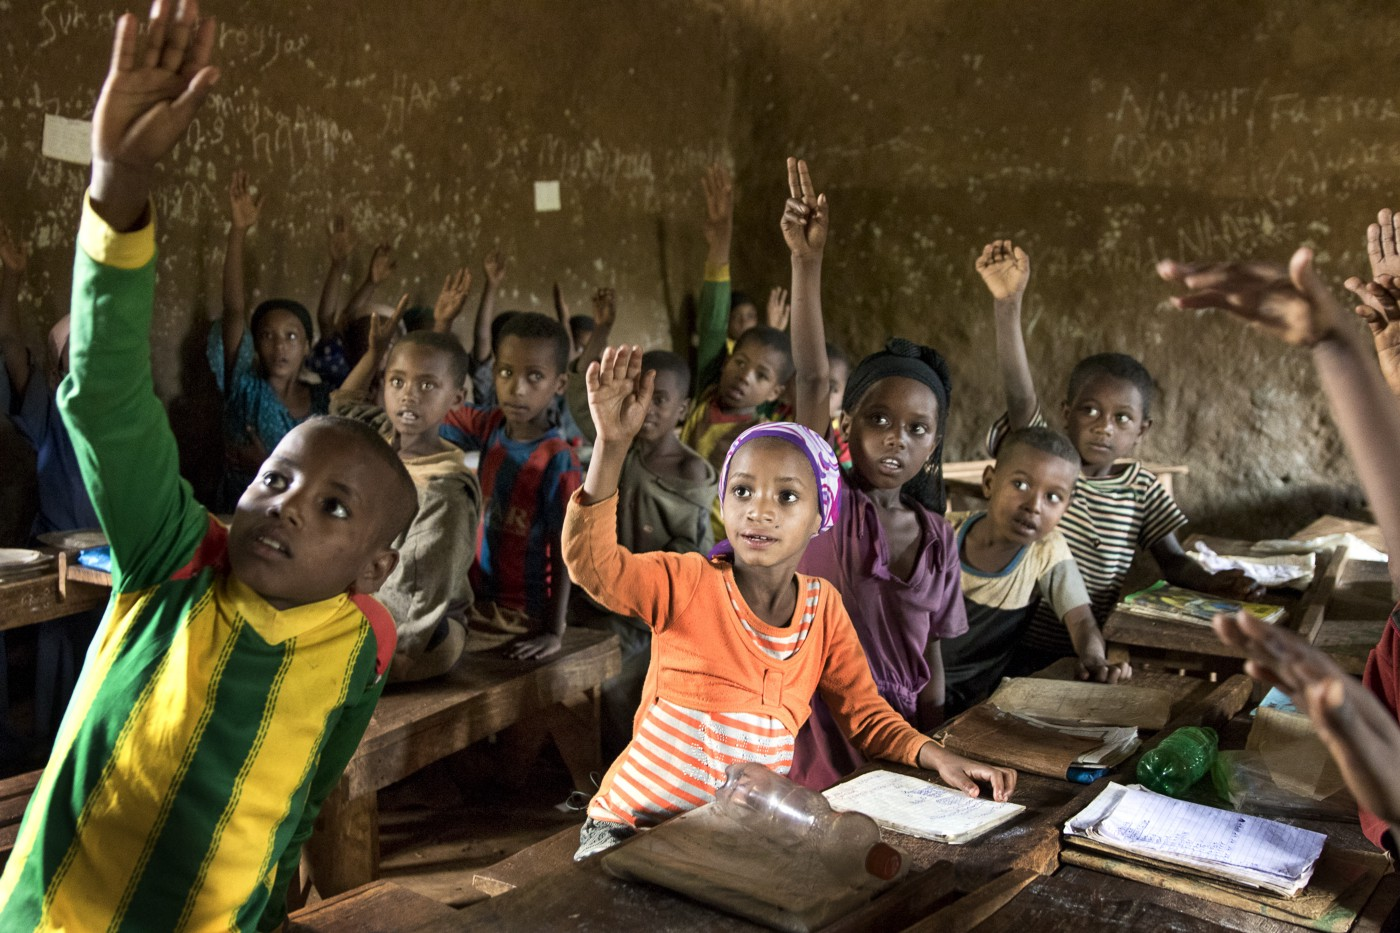 A group of children raise their hands in a classroom.